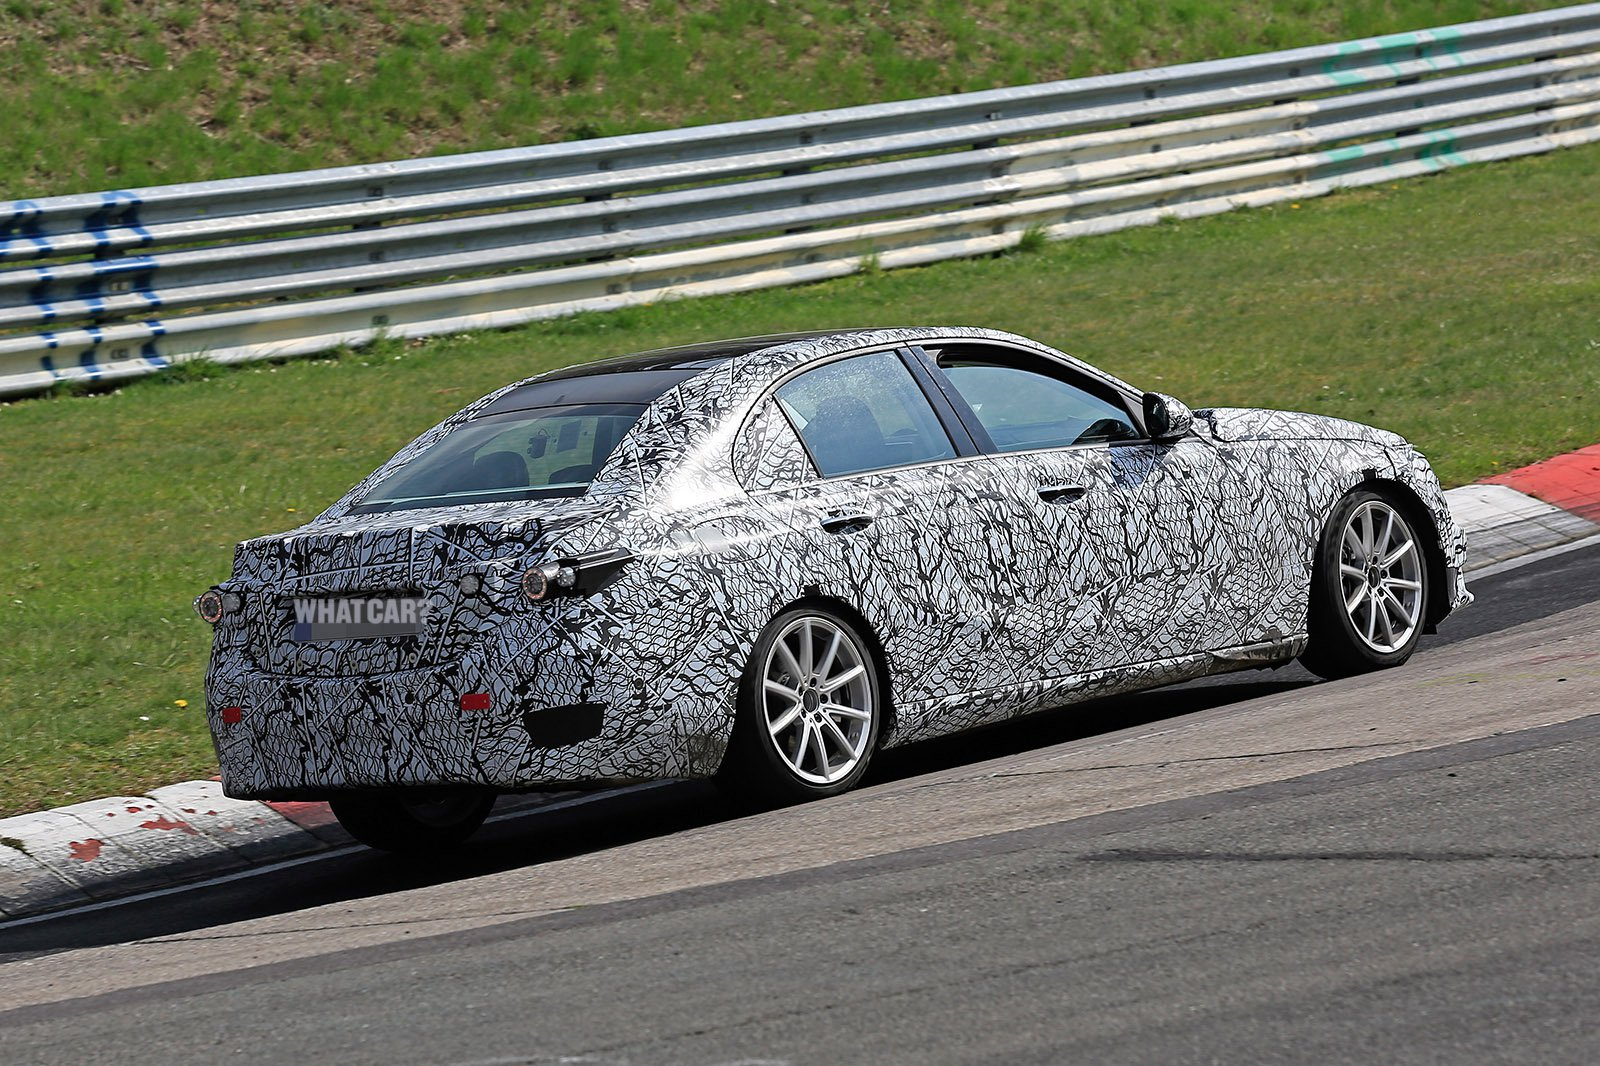 2021 Mercedes C-Class rear spy shot